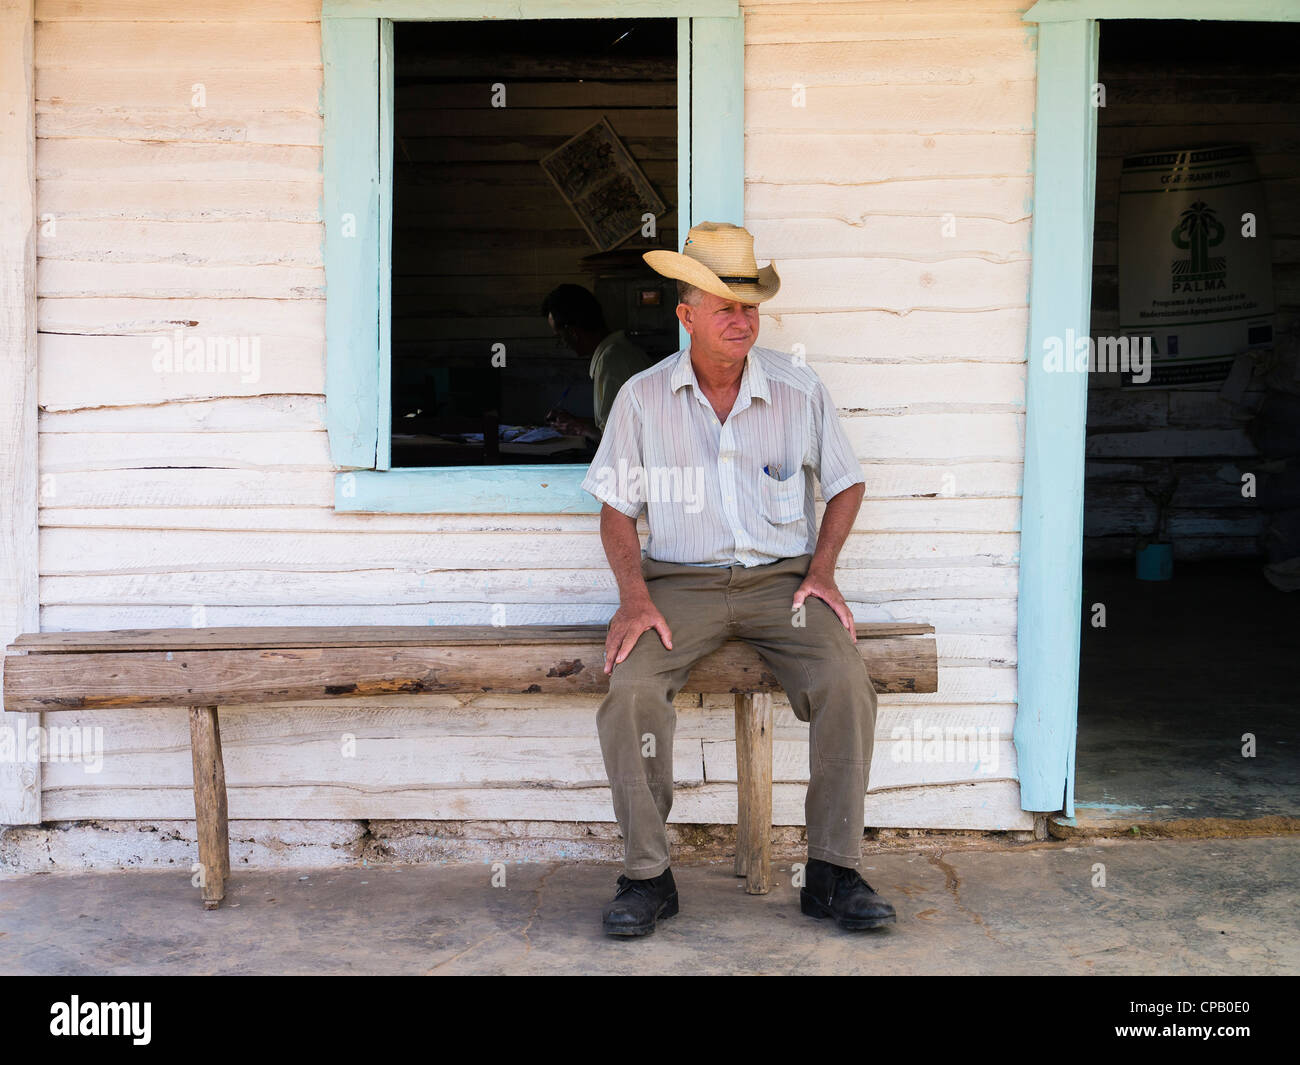 A 60-70 year old Cuban Hispanic male sits on a crude wooden bench on his front porch wearing a straw hat in Viñales, Cuba. Stock Photo